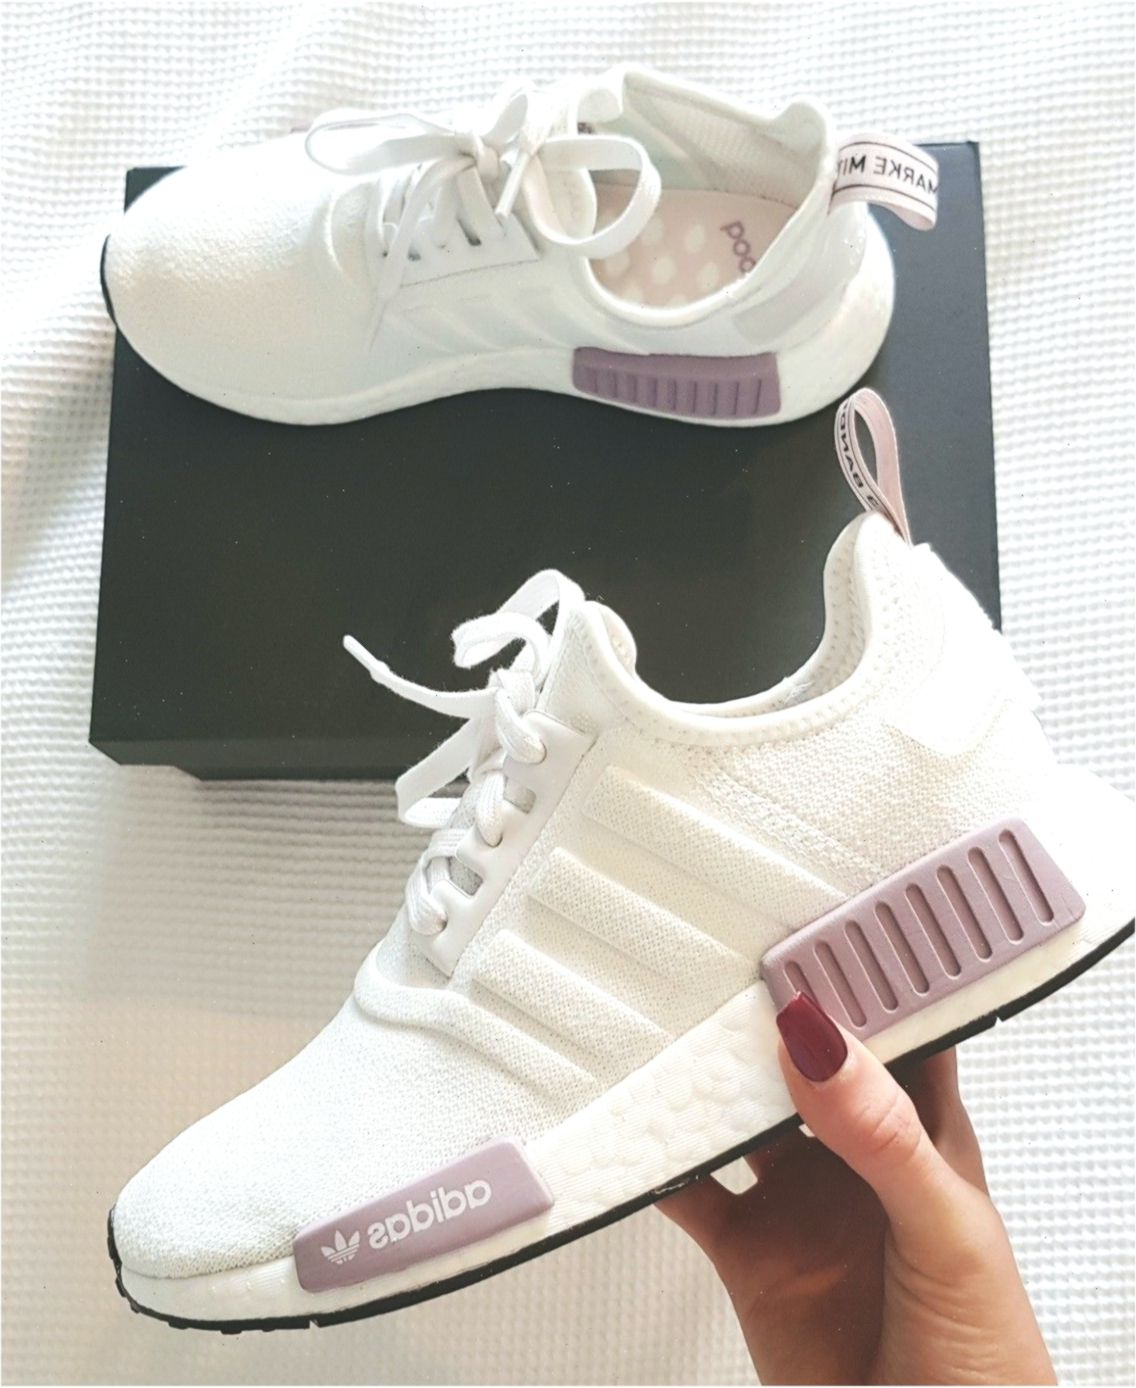 adidas schuhe nmd damen rosa 62% di sconto sglabs.it